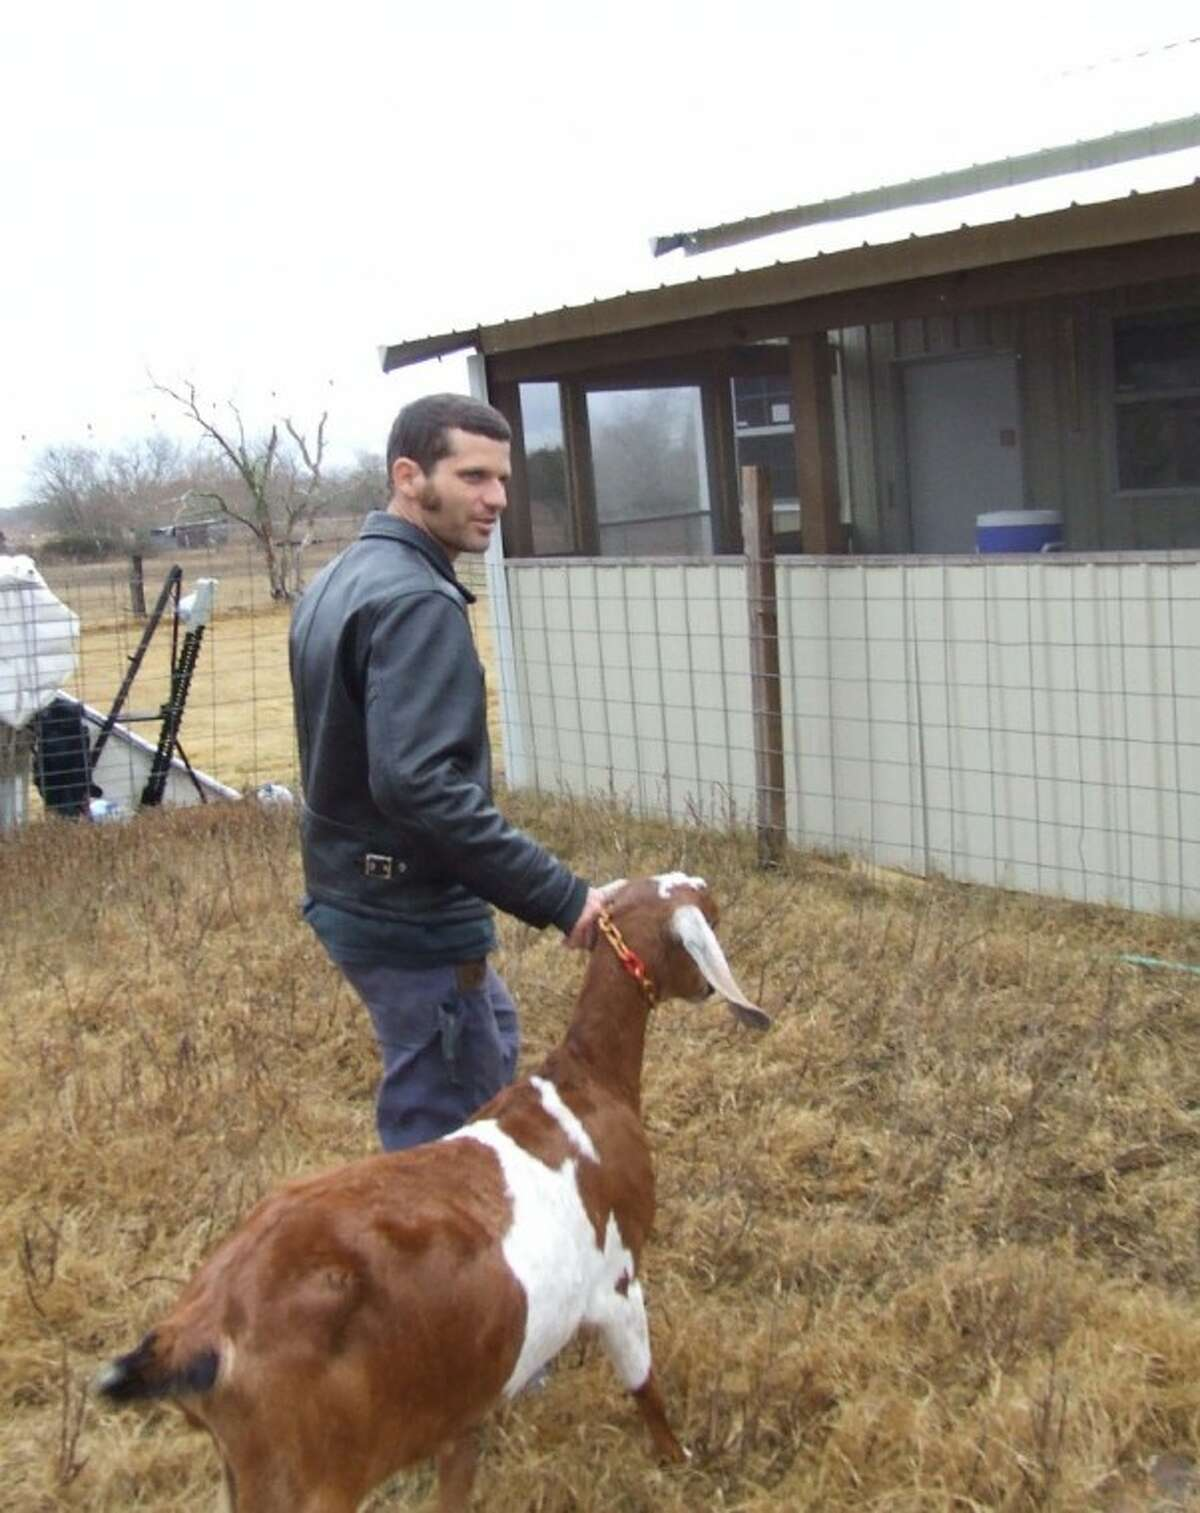 Christian Seger leads a goat back to his pen at Blue Heron Farm in Waller. There he and his wife run and operate the farm to milk goats to make cheeses. The cheese is then sold at the Magnolia Farmers Market.